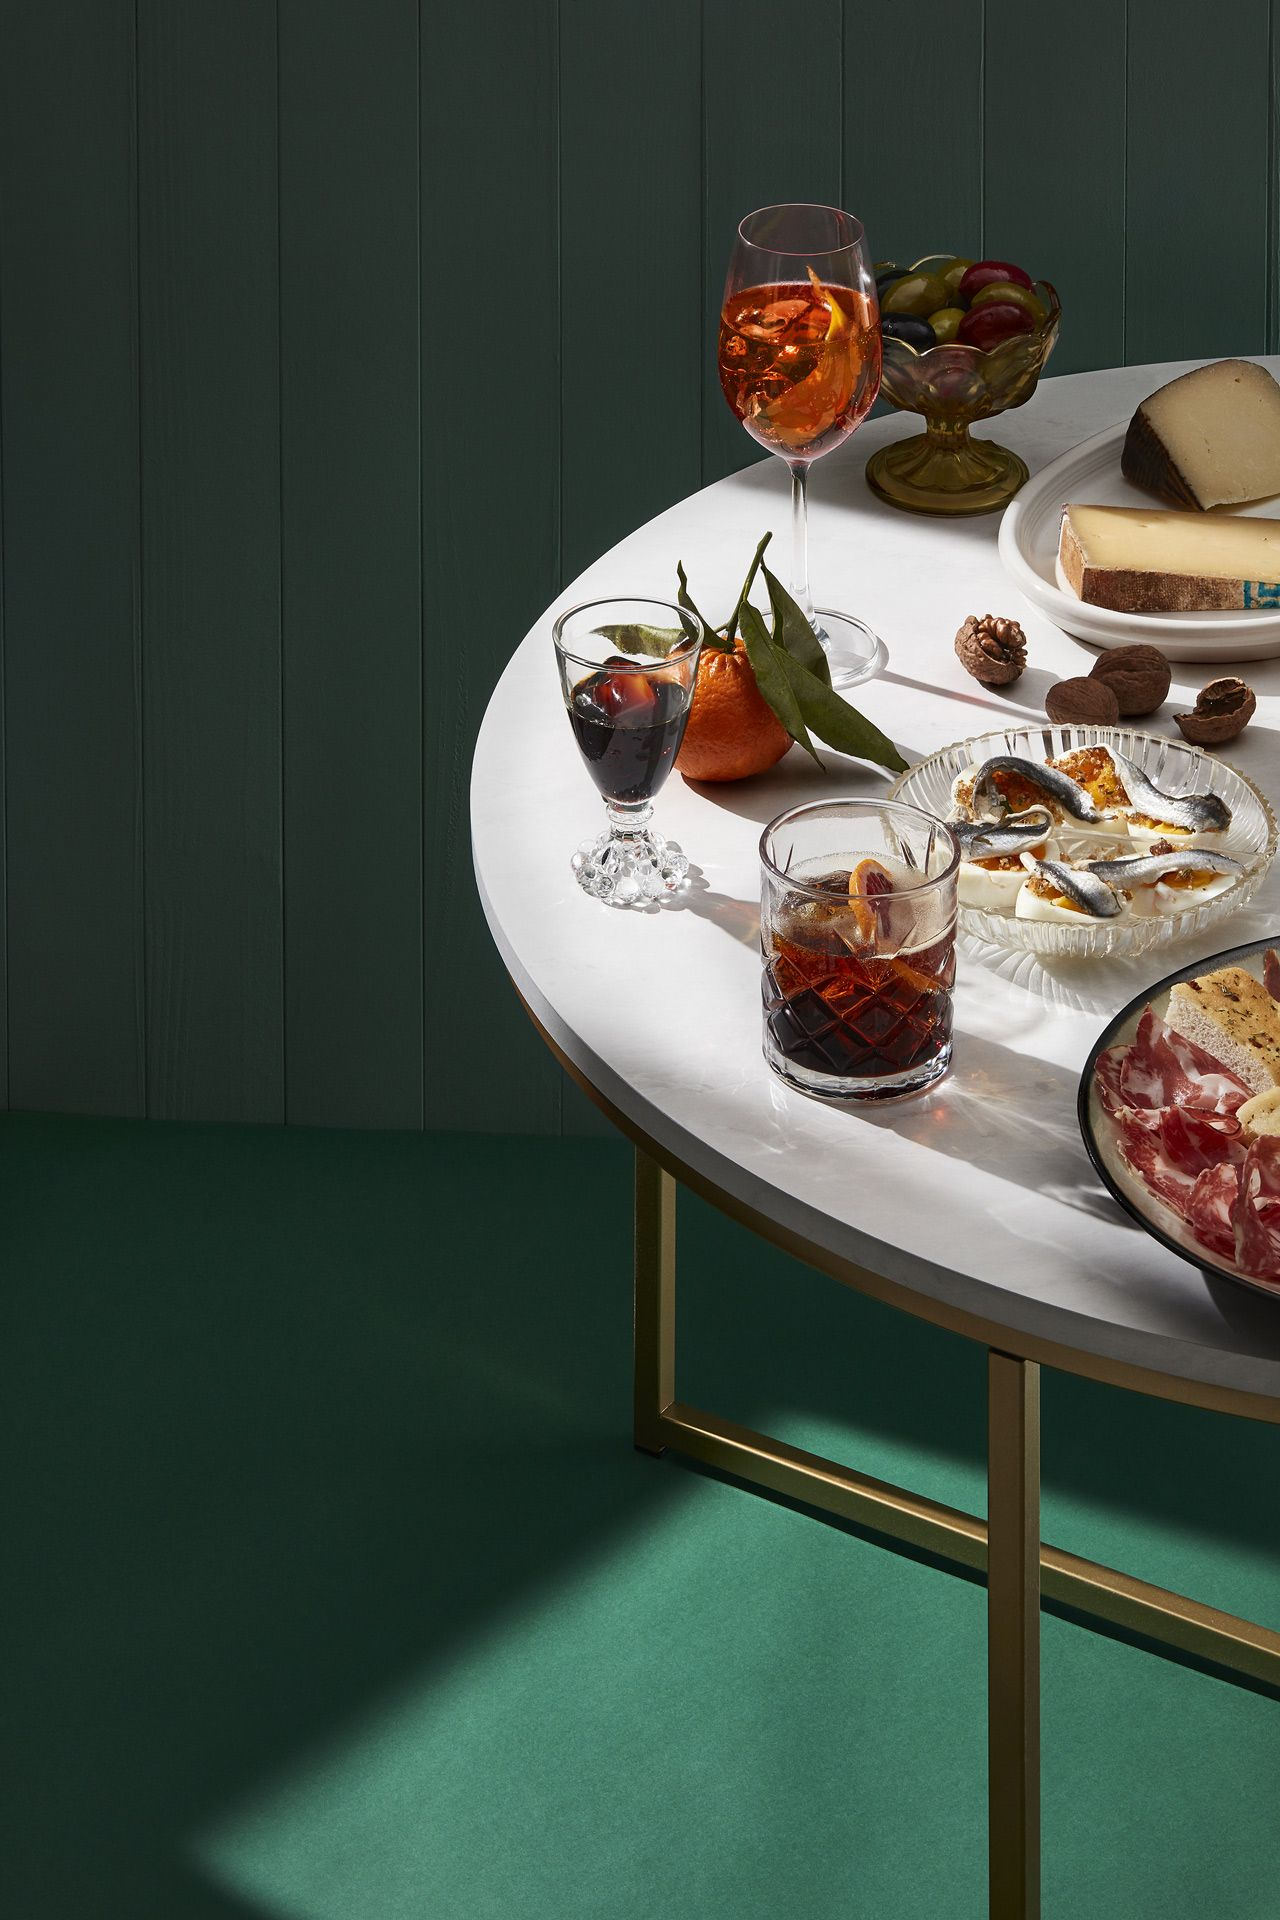 On top of an emerald green floor and background stands a marble table with gold legs. On the table there are olives in a cup, platters of cold cuts and cheeses and fancy cocktails.